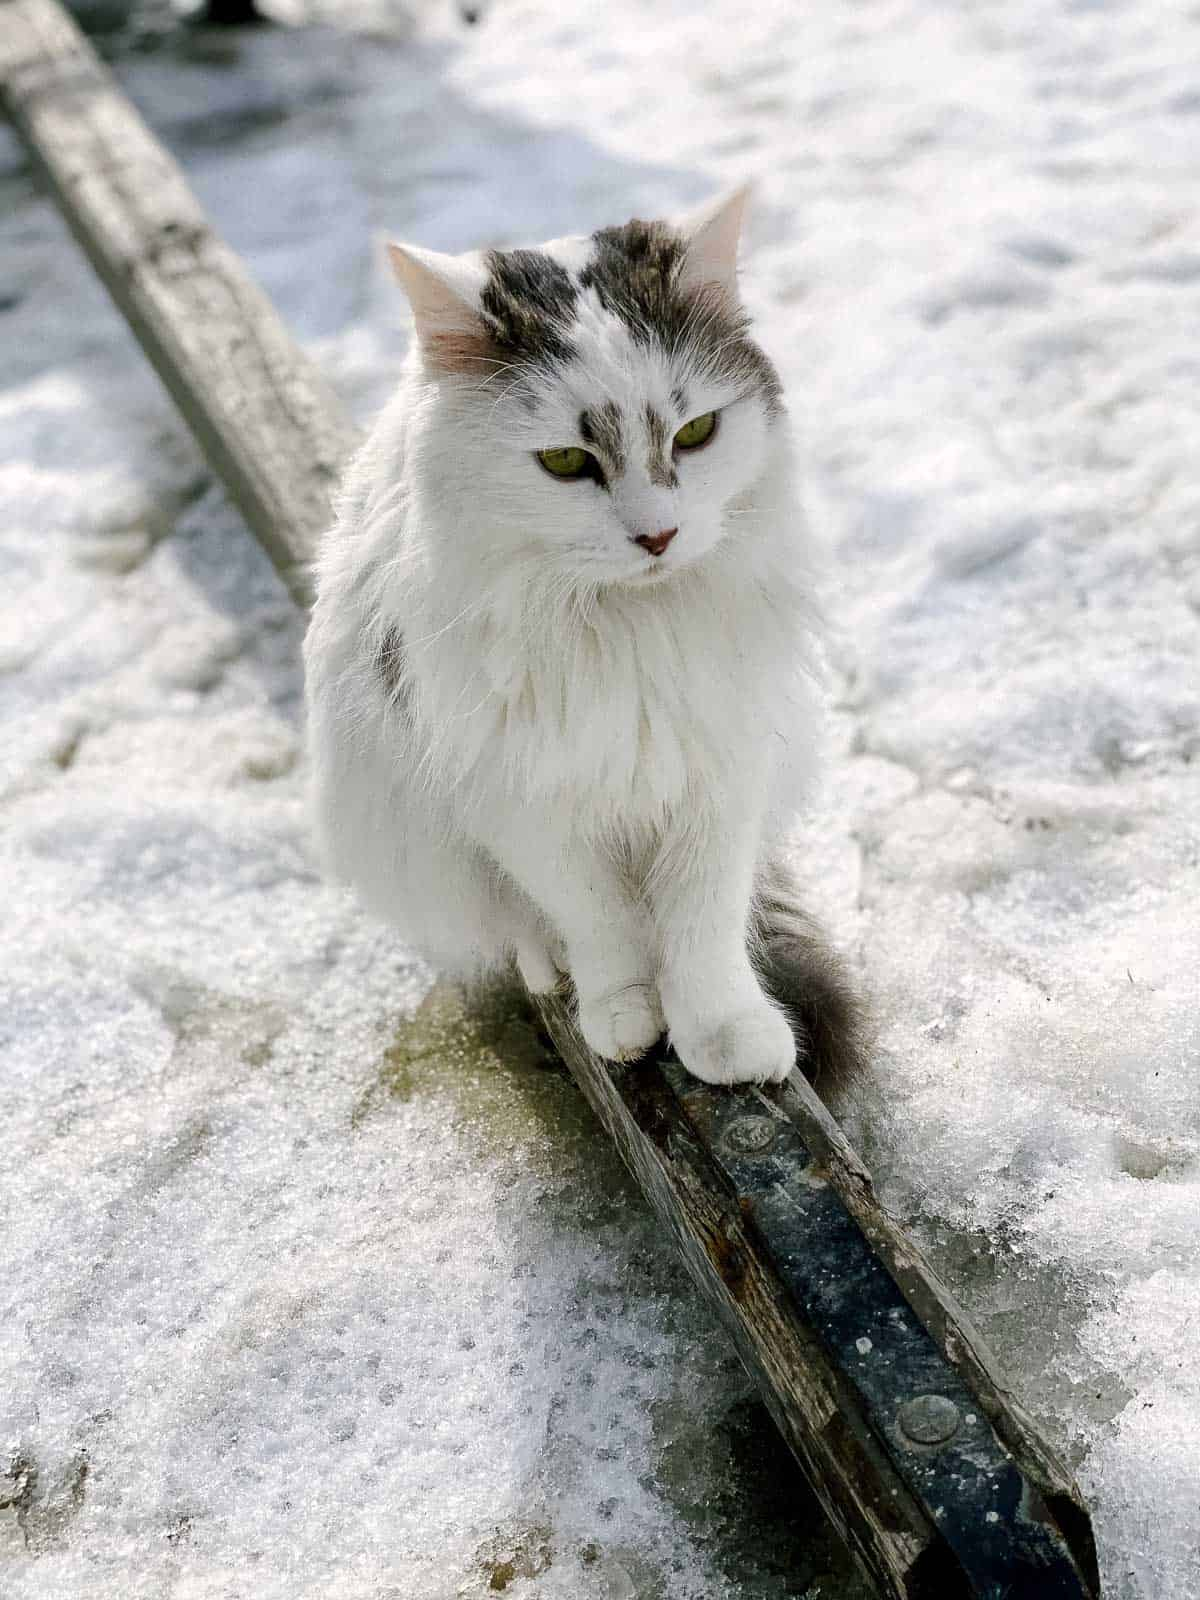 white and grey cat with green eyes and pink nose sits on piece of wood in the snow